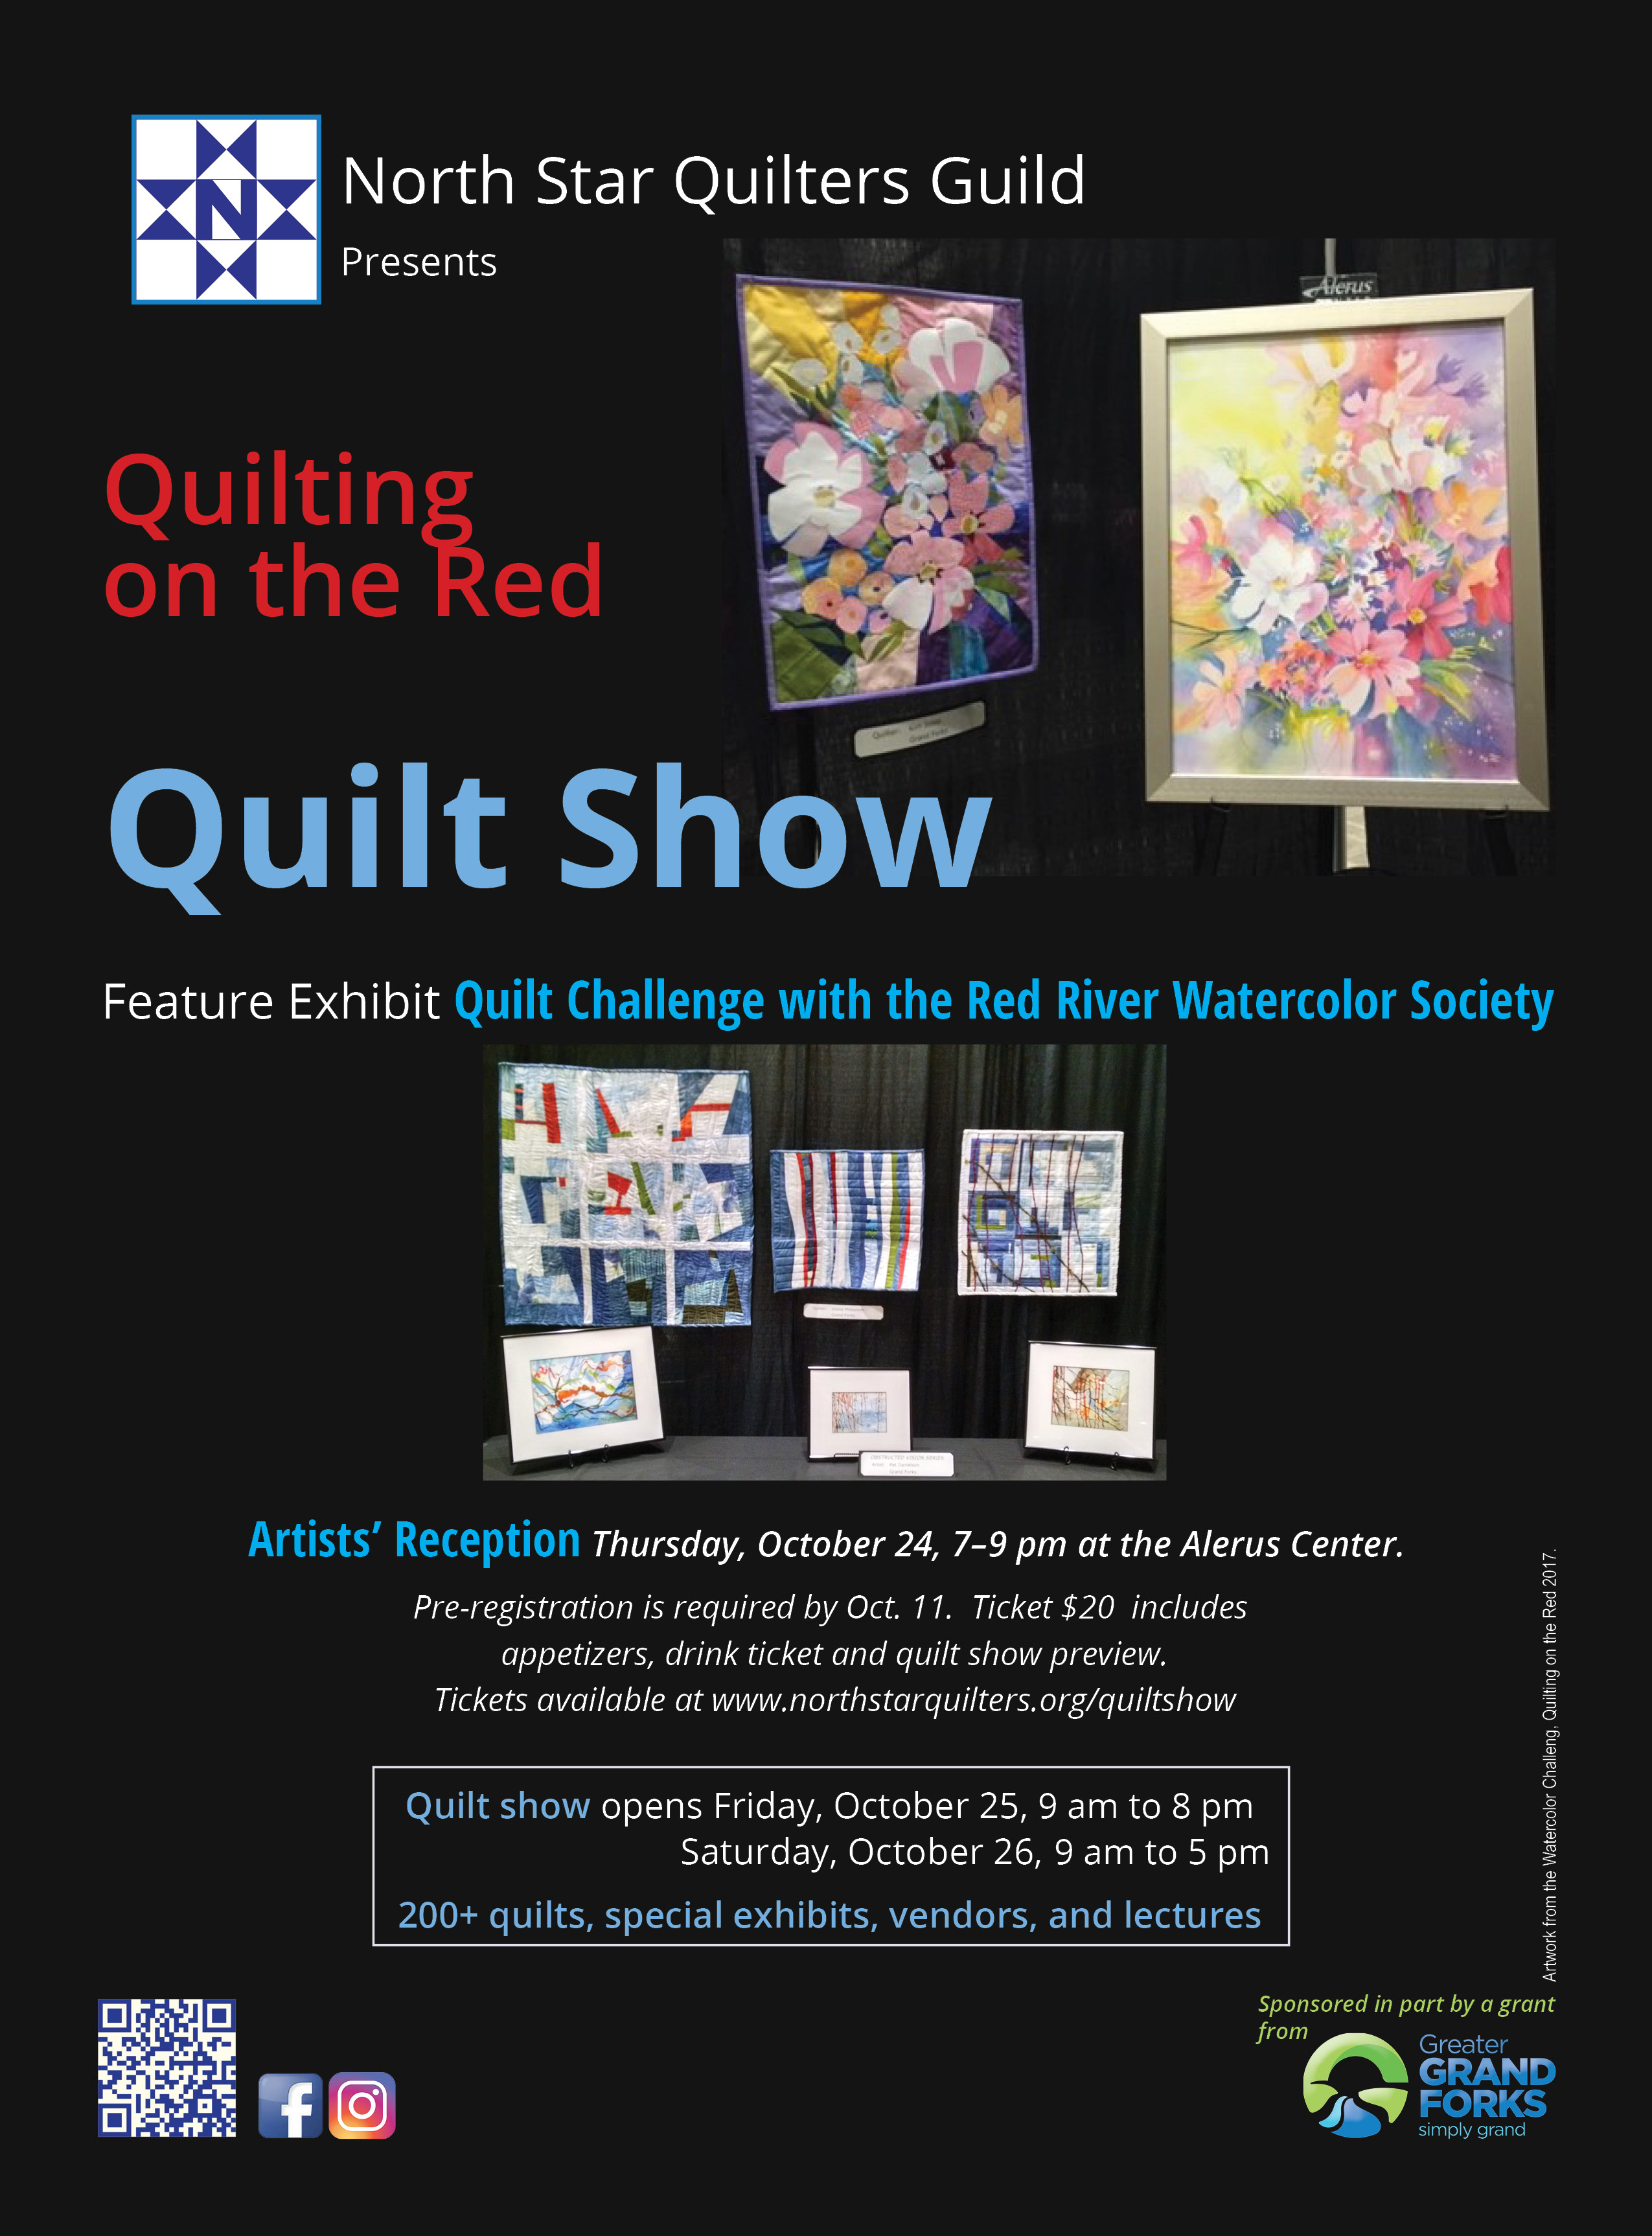 Quilting on the Red 2019 Watercolor Sequel Artists Reception